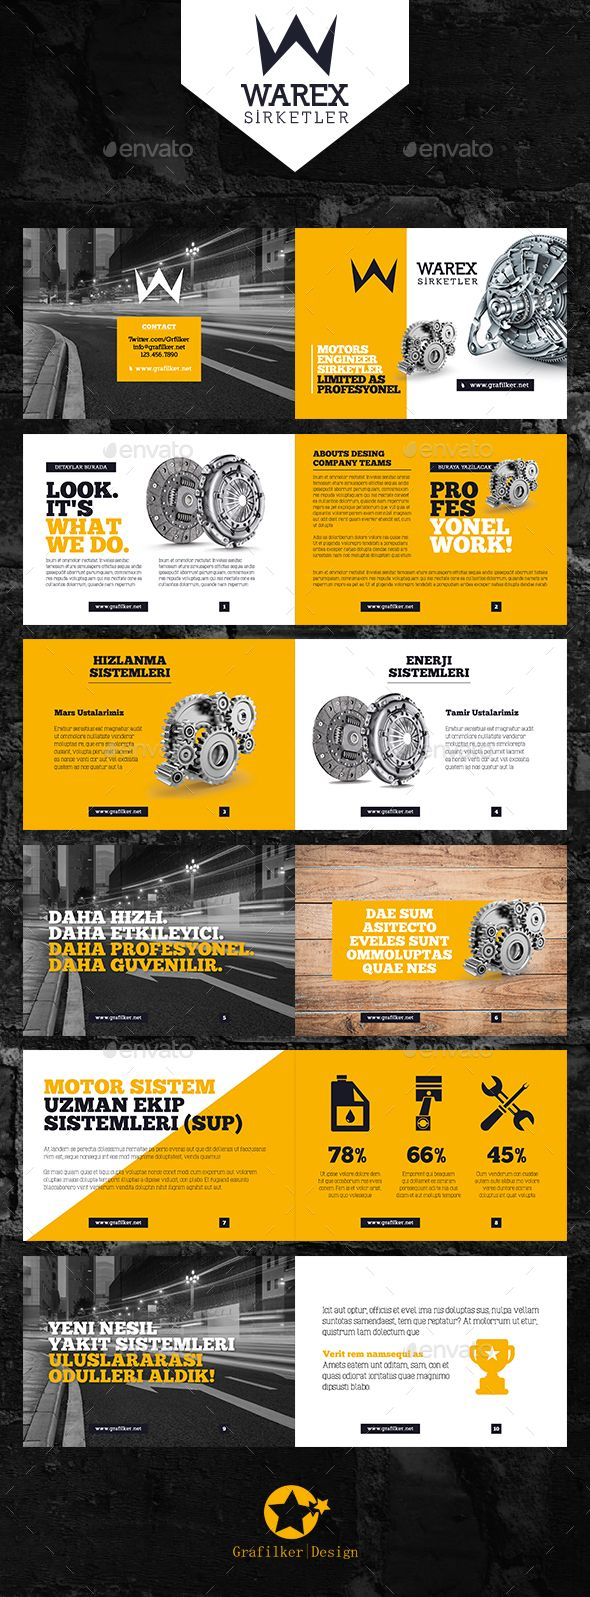 Product Information Brochure Templates PSD, InDesign INDD